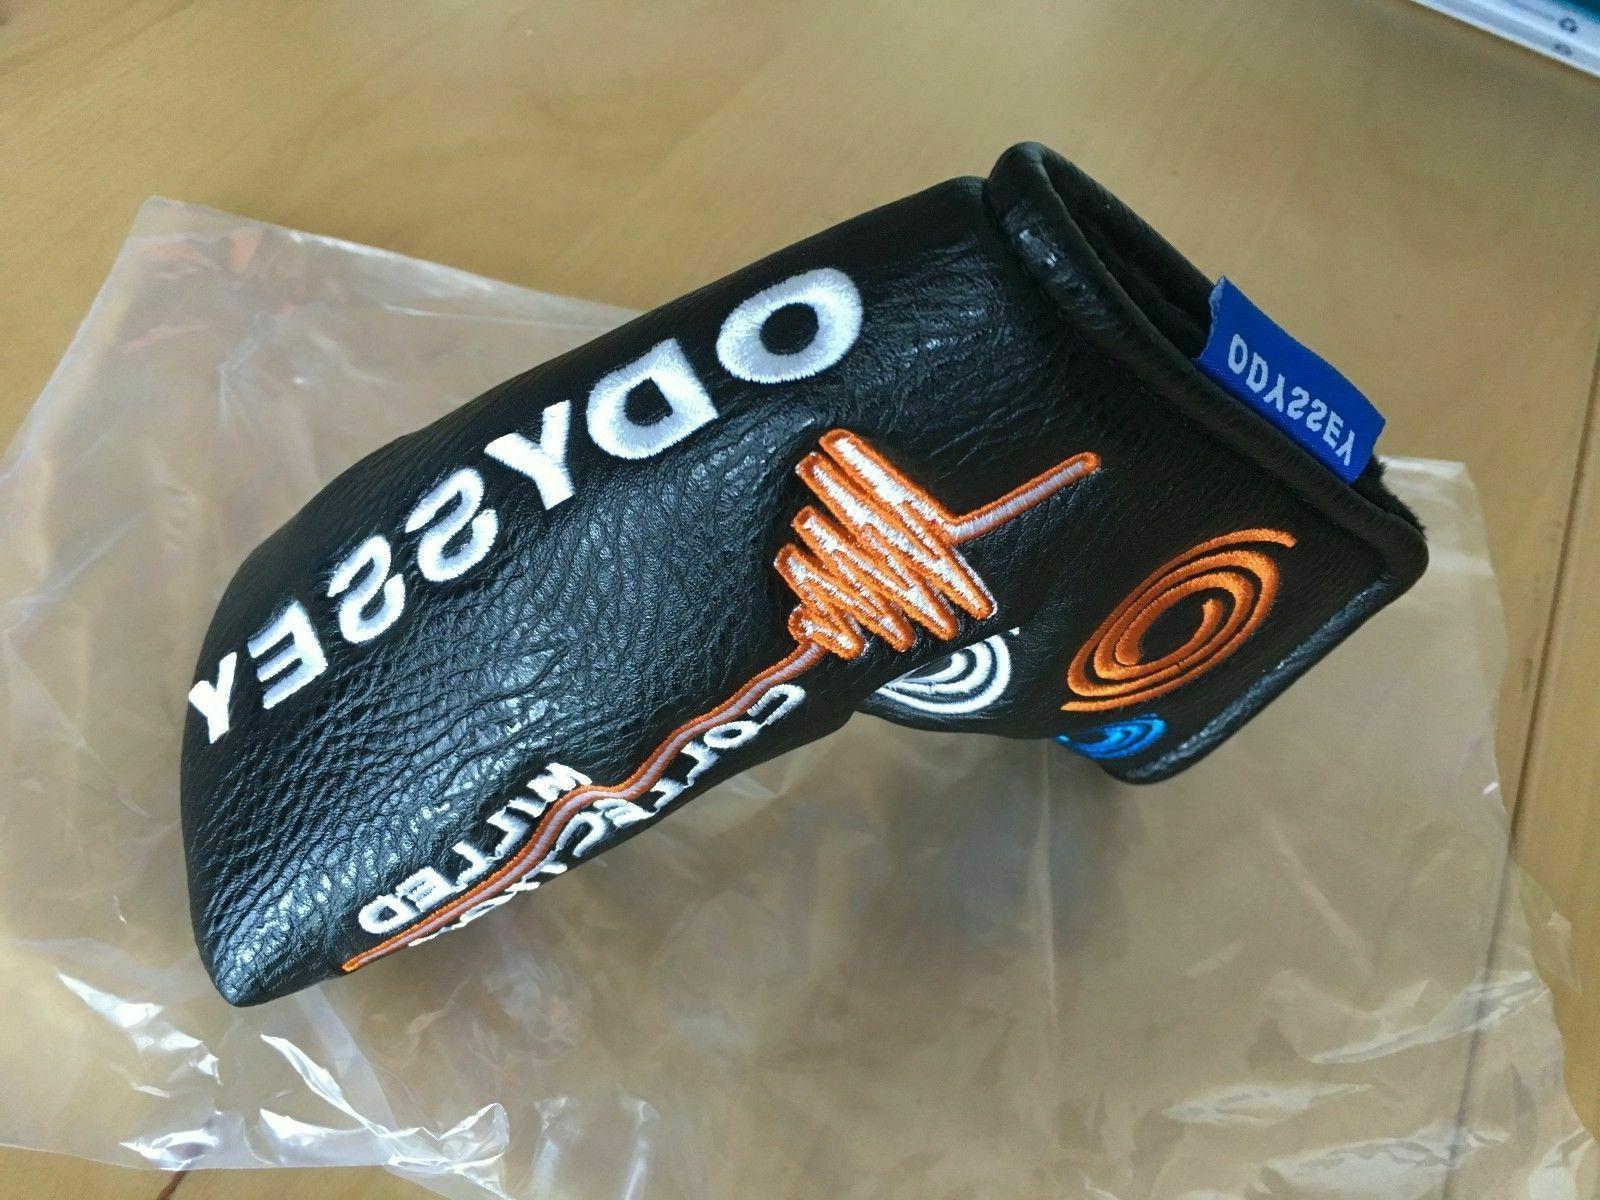 milled collection sx mxm blade putter headcover